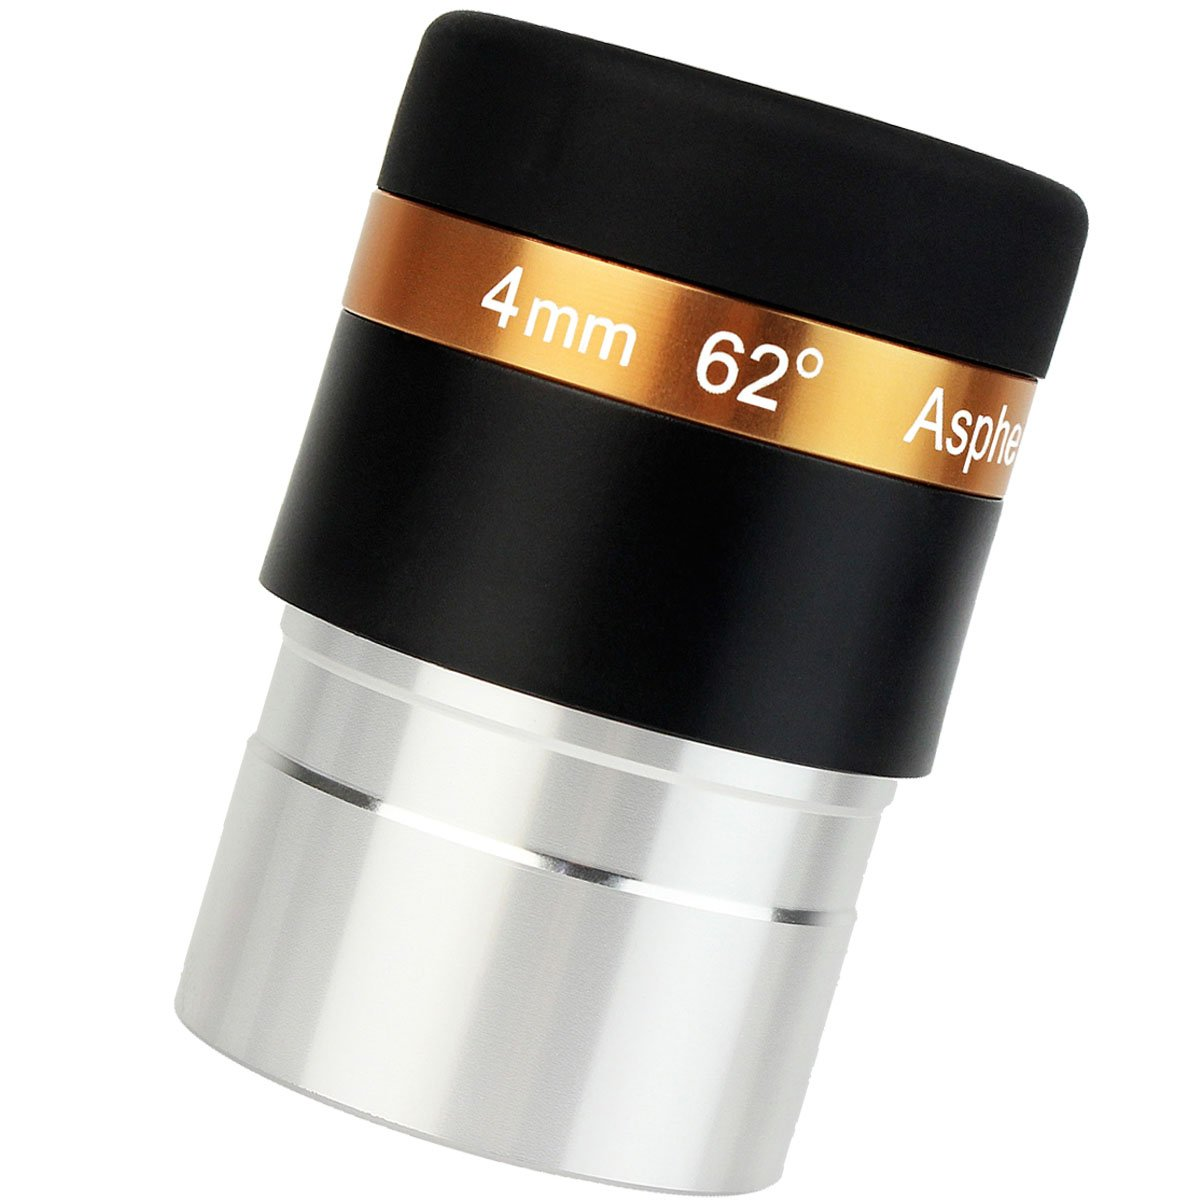 SVBONY Telescope Lens 4mm Telescopes Eyepieces Wide Angle 62 Degree Aspheric Eyepiece Fully Coated lens for 1.25'' 31.7mm Astronomic Telescopes